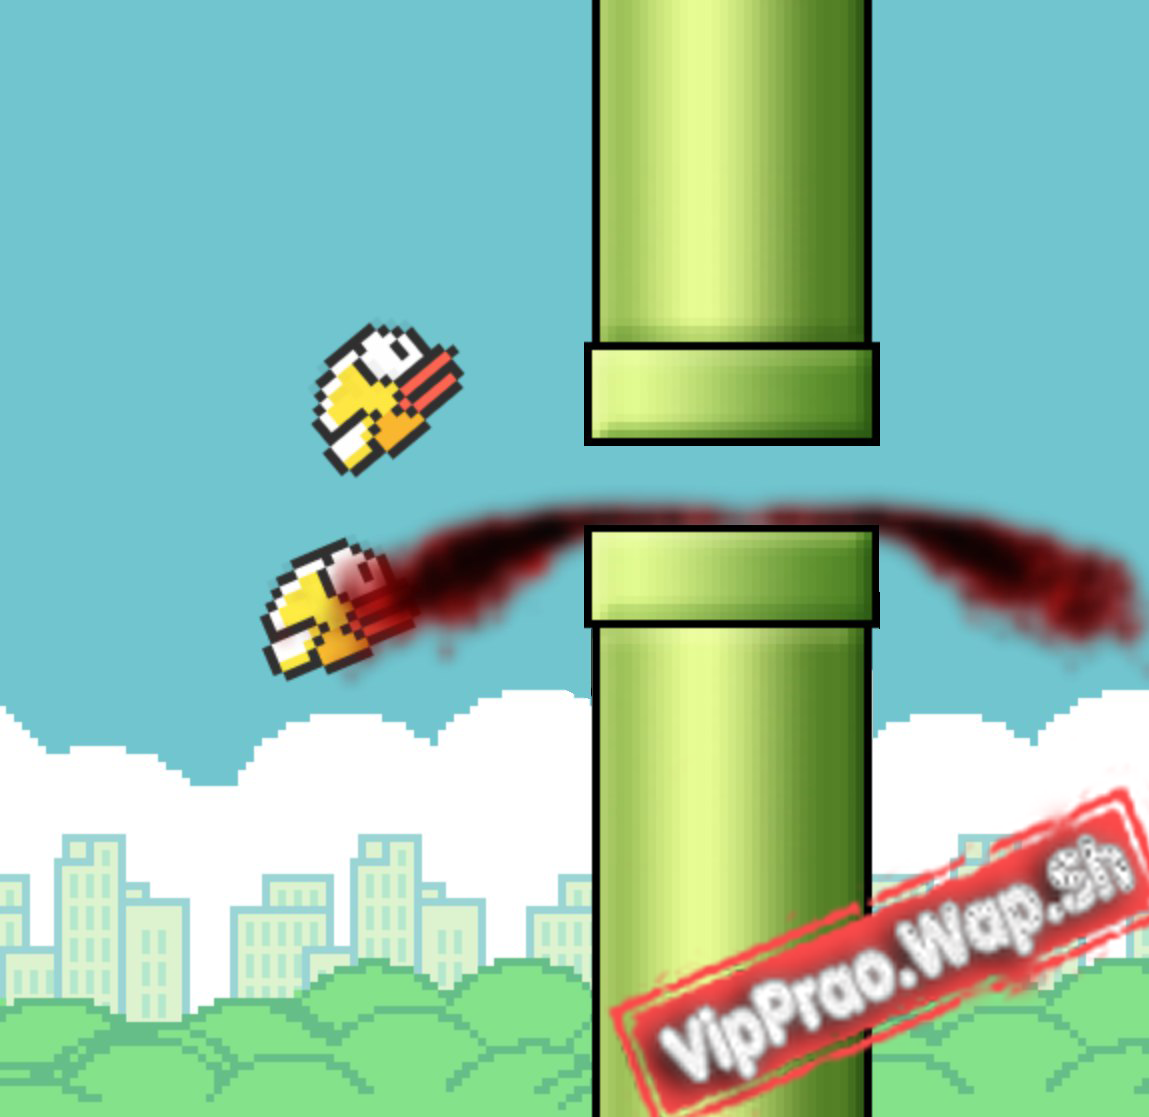 Share-code-choi-game-giet-chim-flappy-bird-tren-pc-web.c